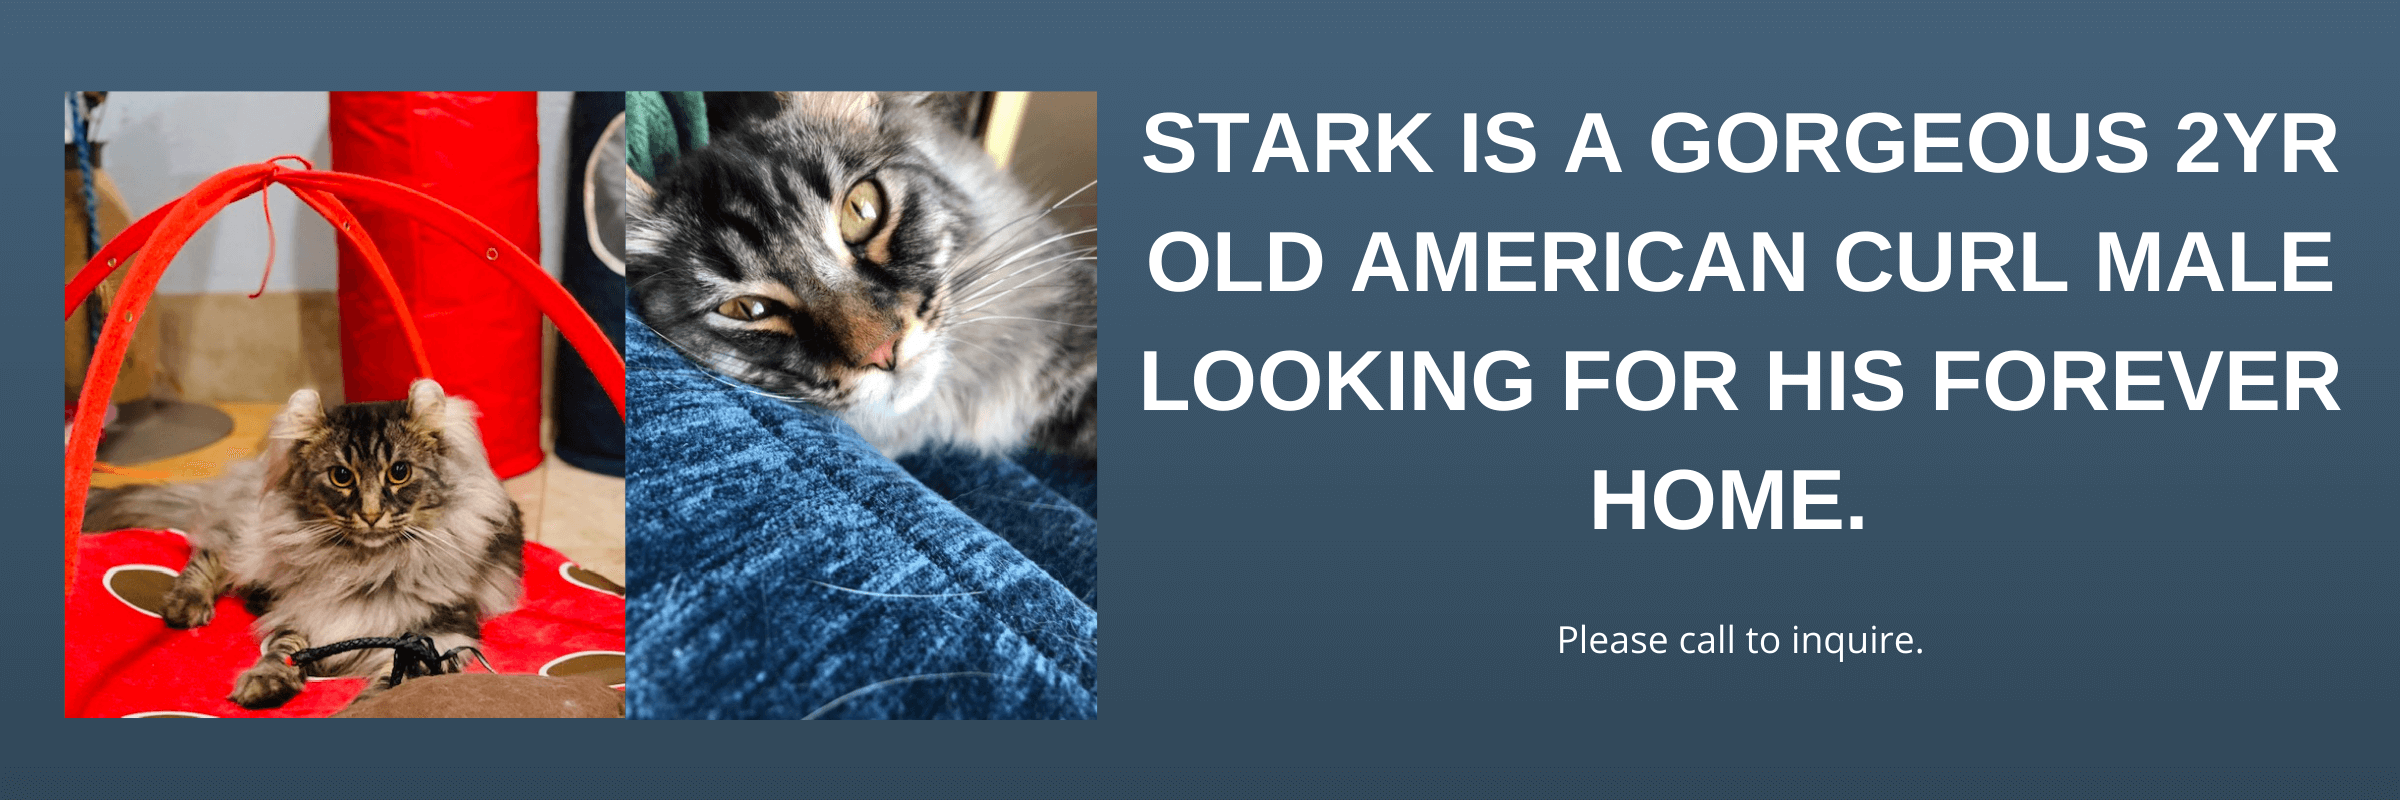 American Curl Stark looking for his forever home.